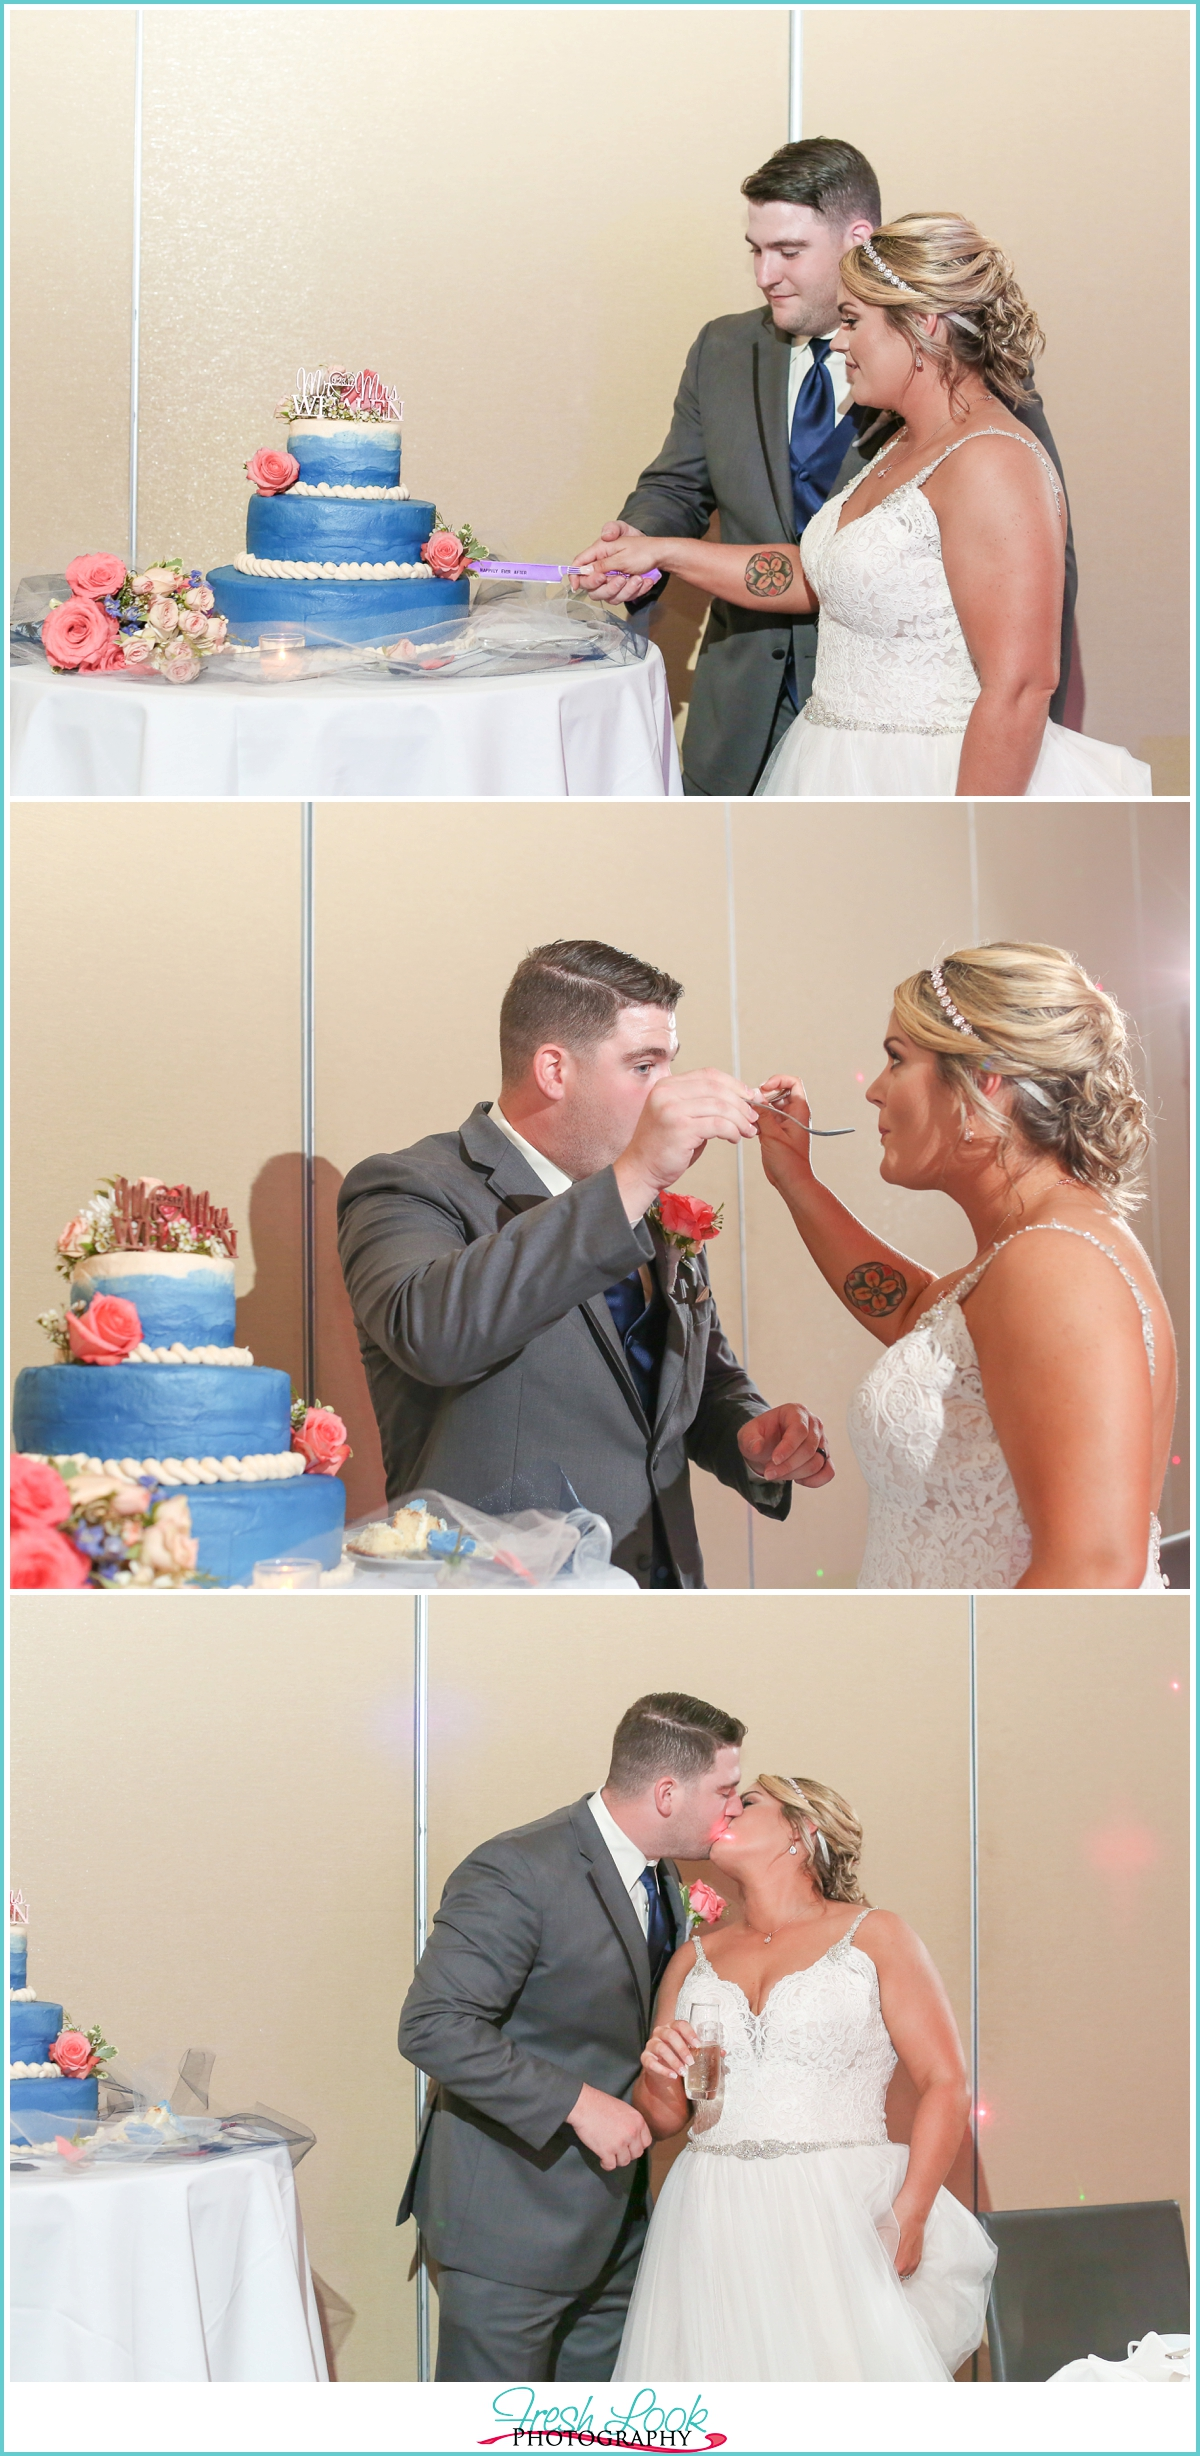 Let them eat cake at the wedding